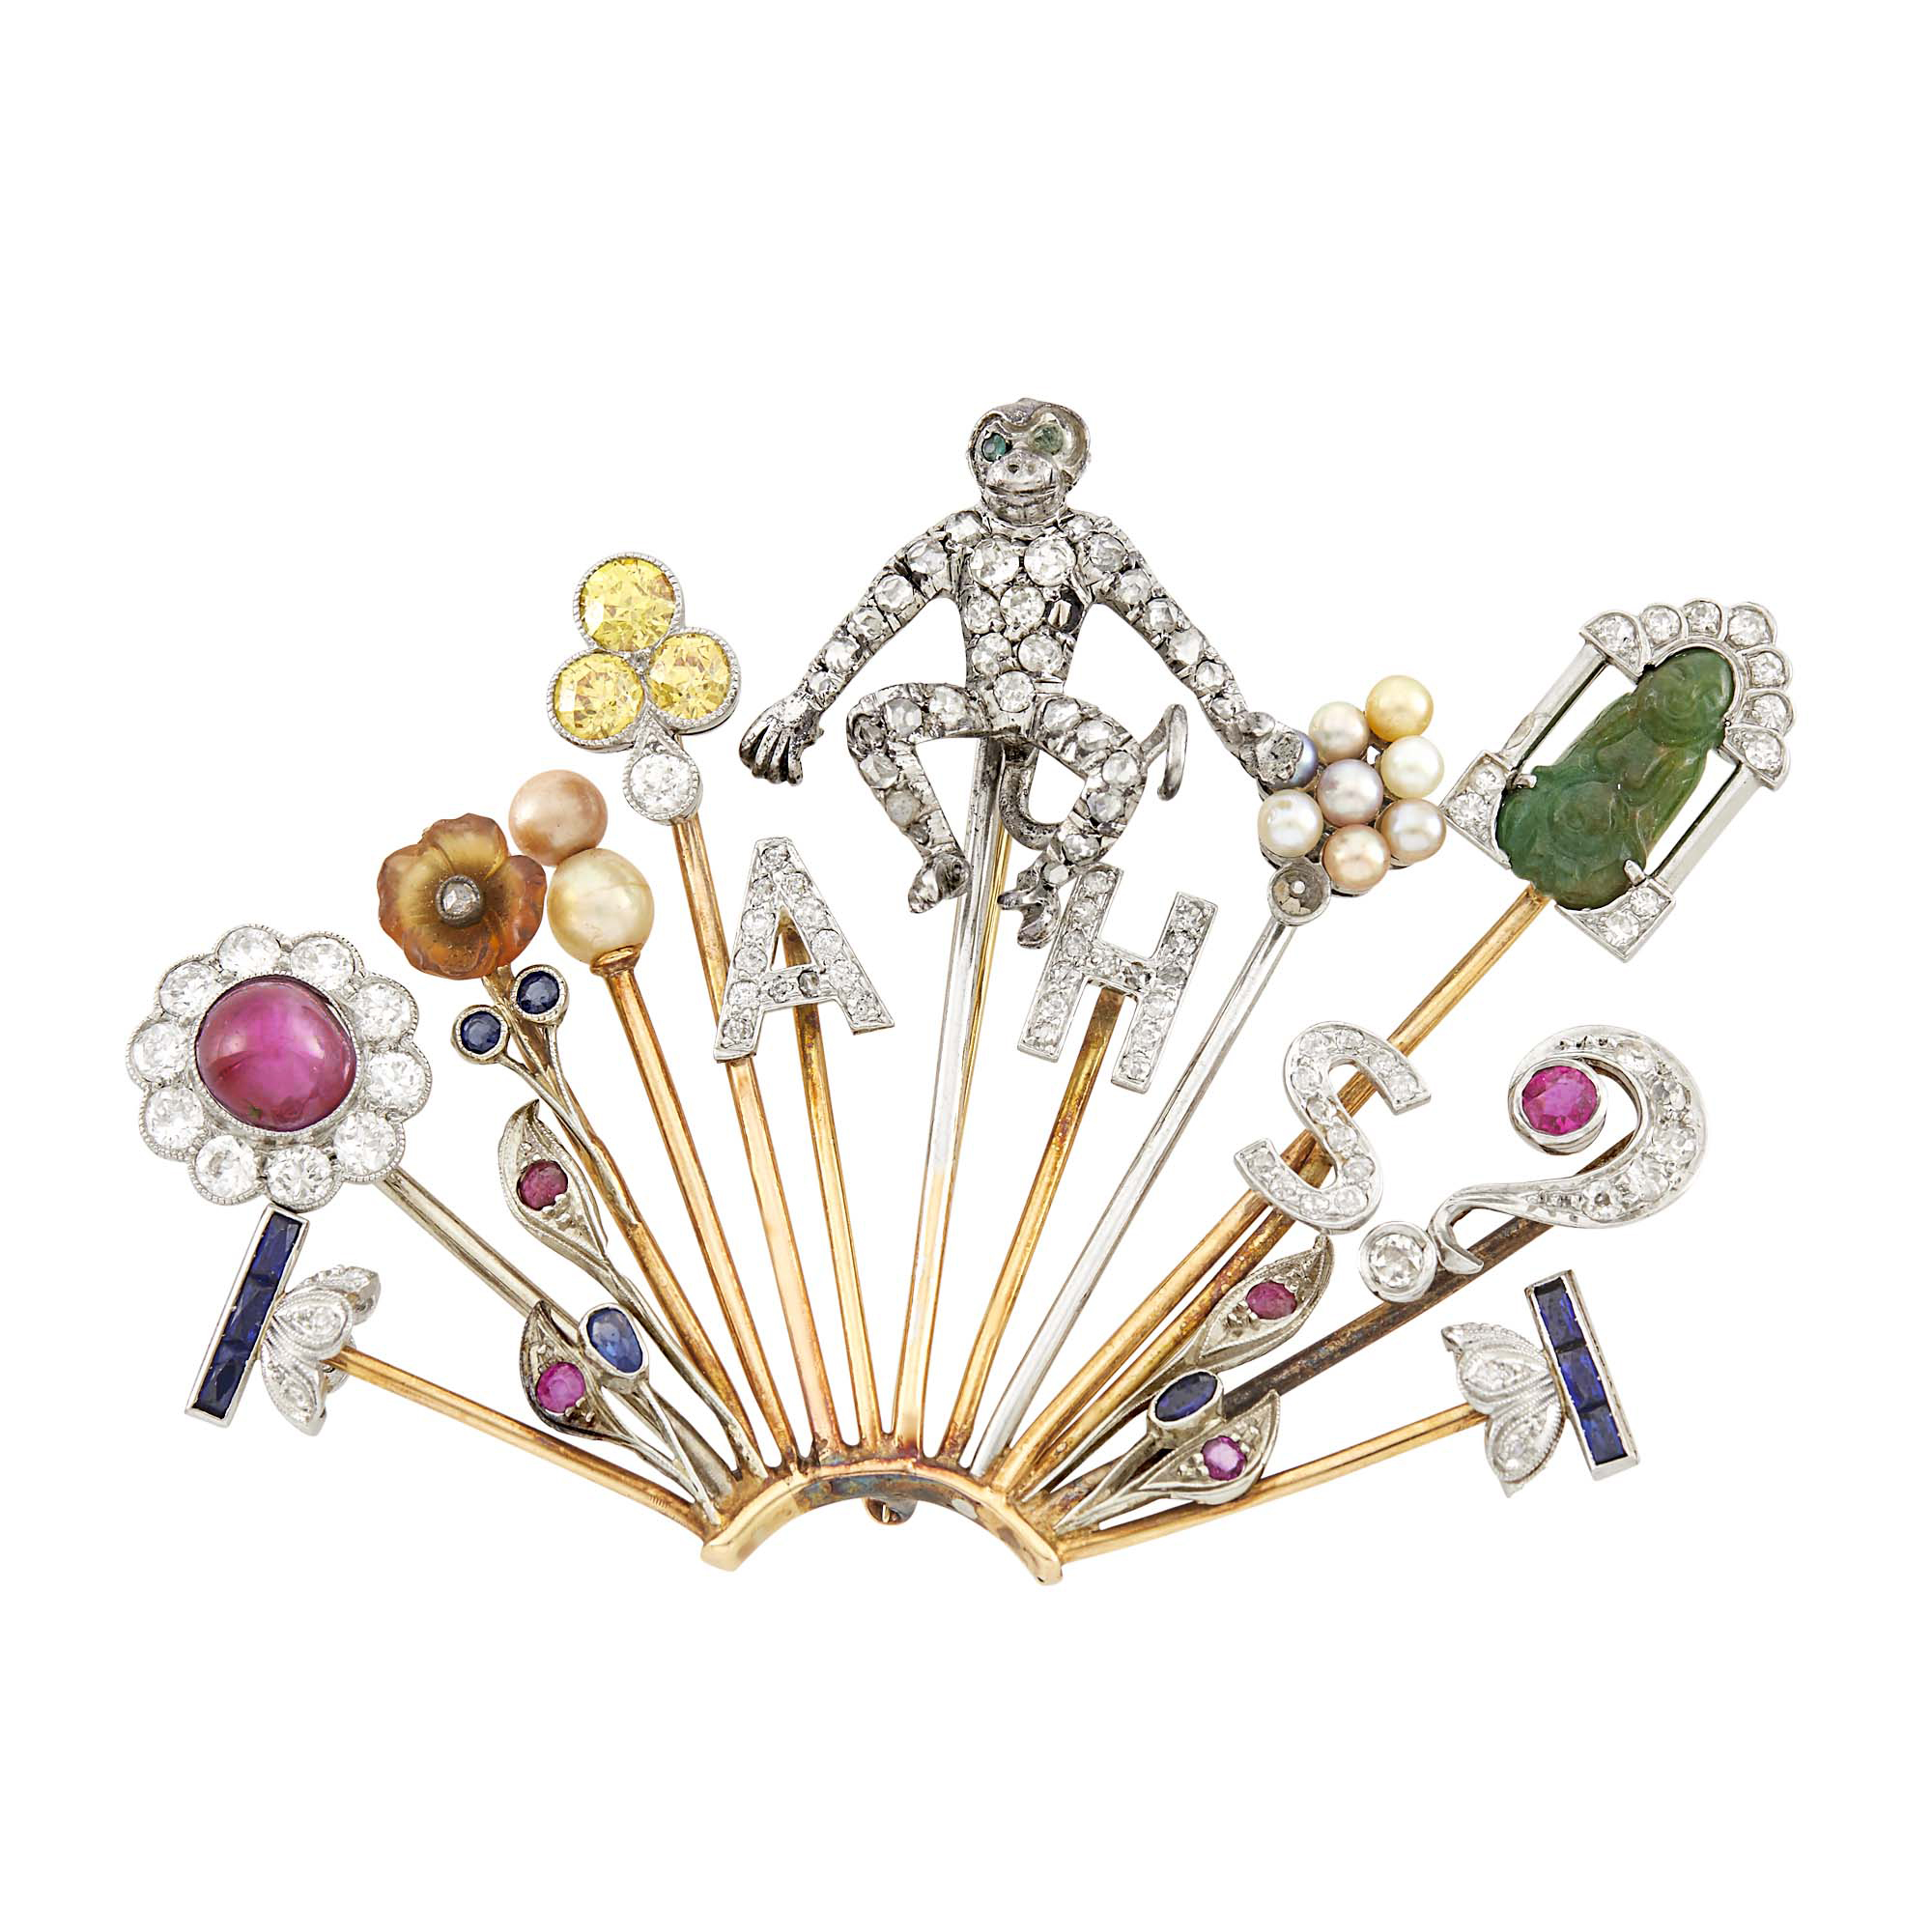 Lot image - Gold, Platinum, Silver, Diamond and Colored Stone Stick Pin Brooch